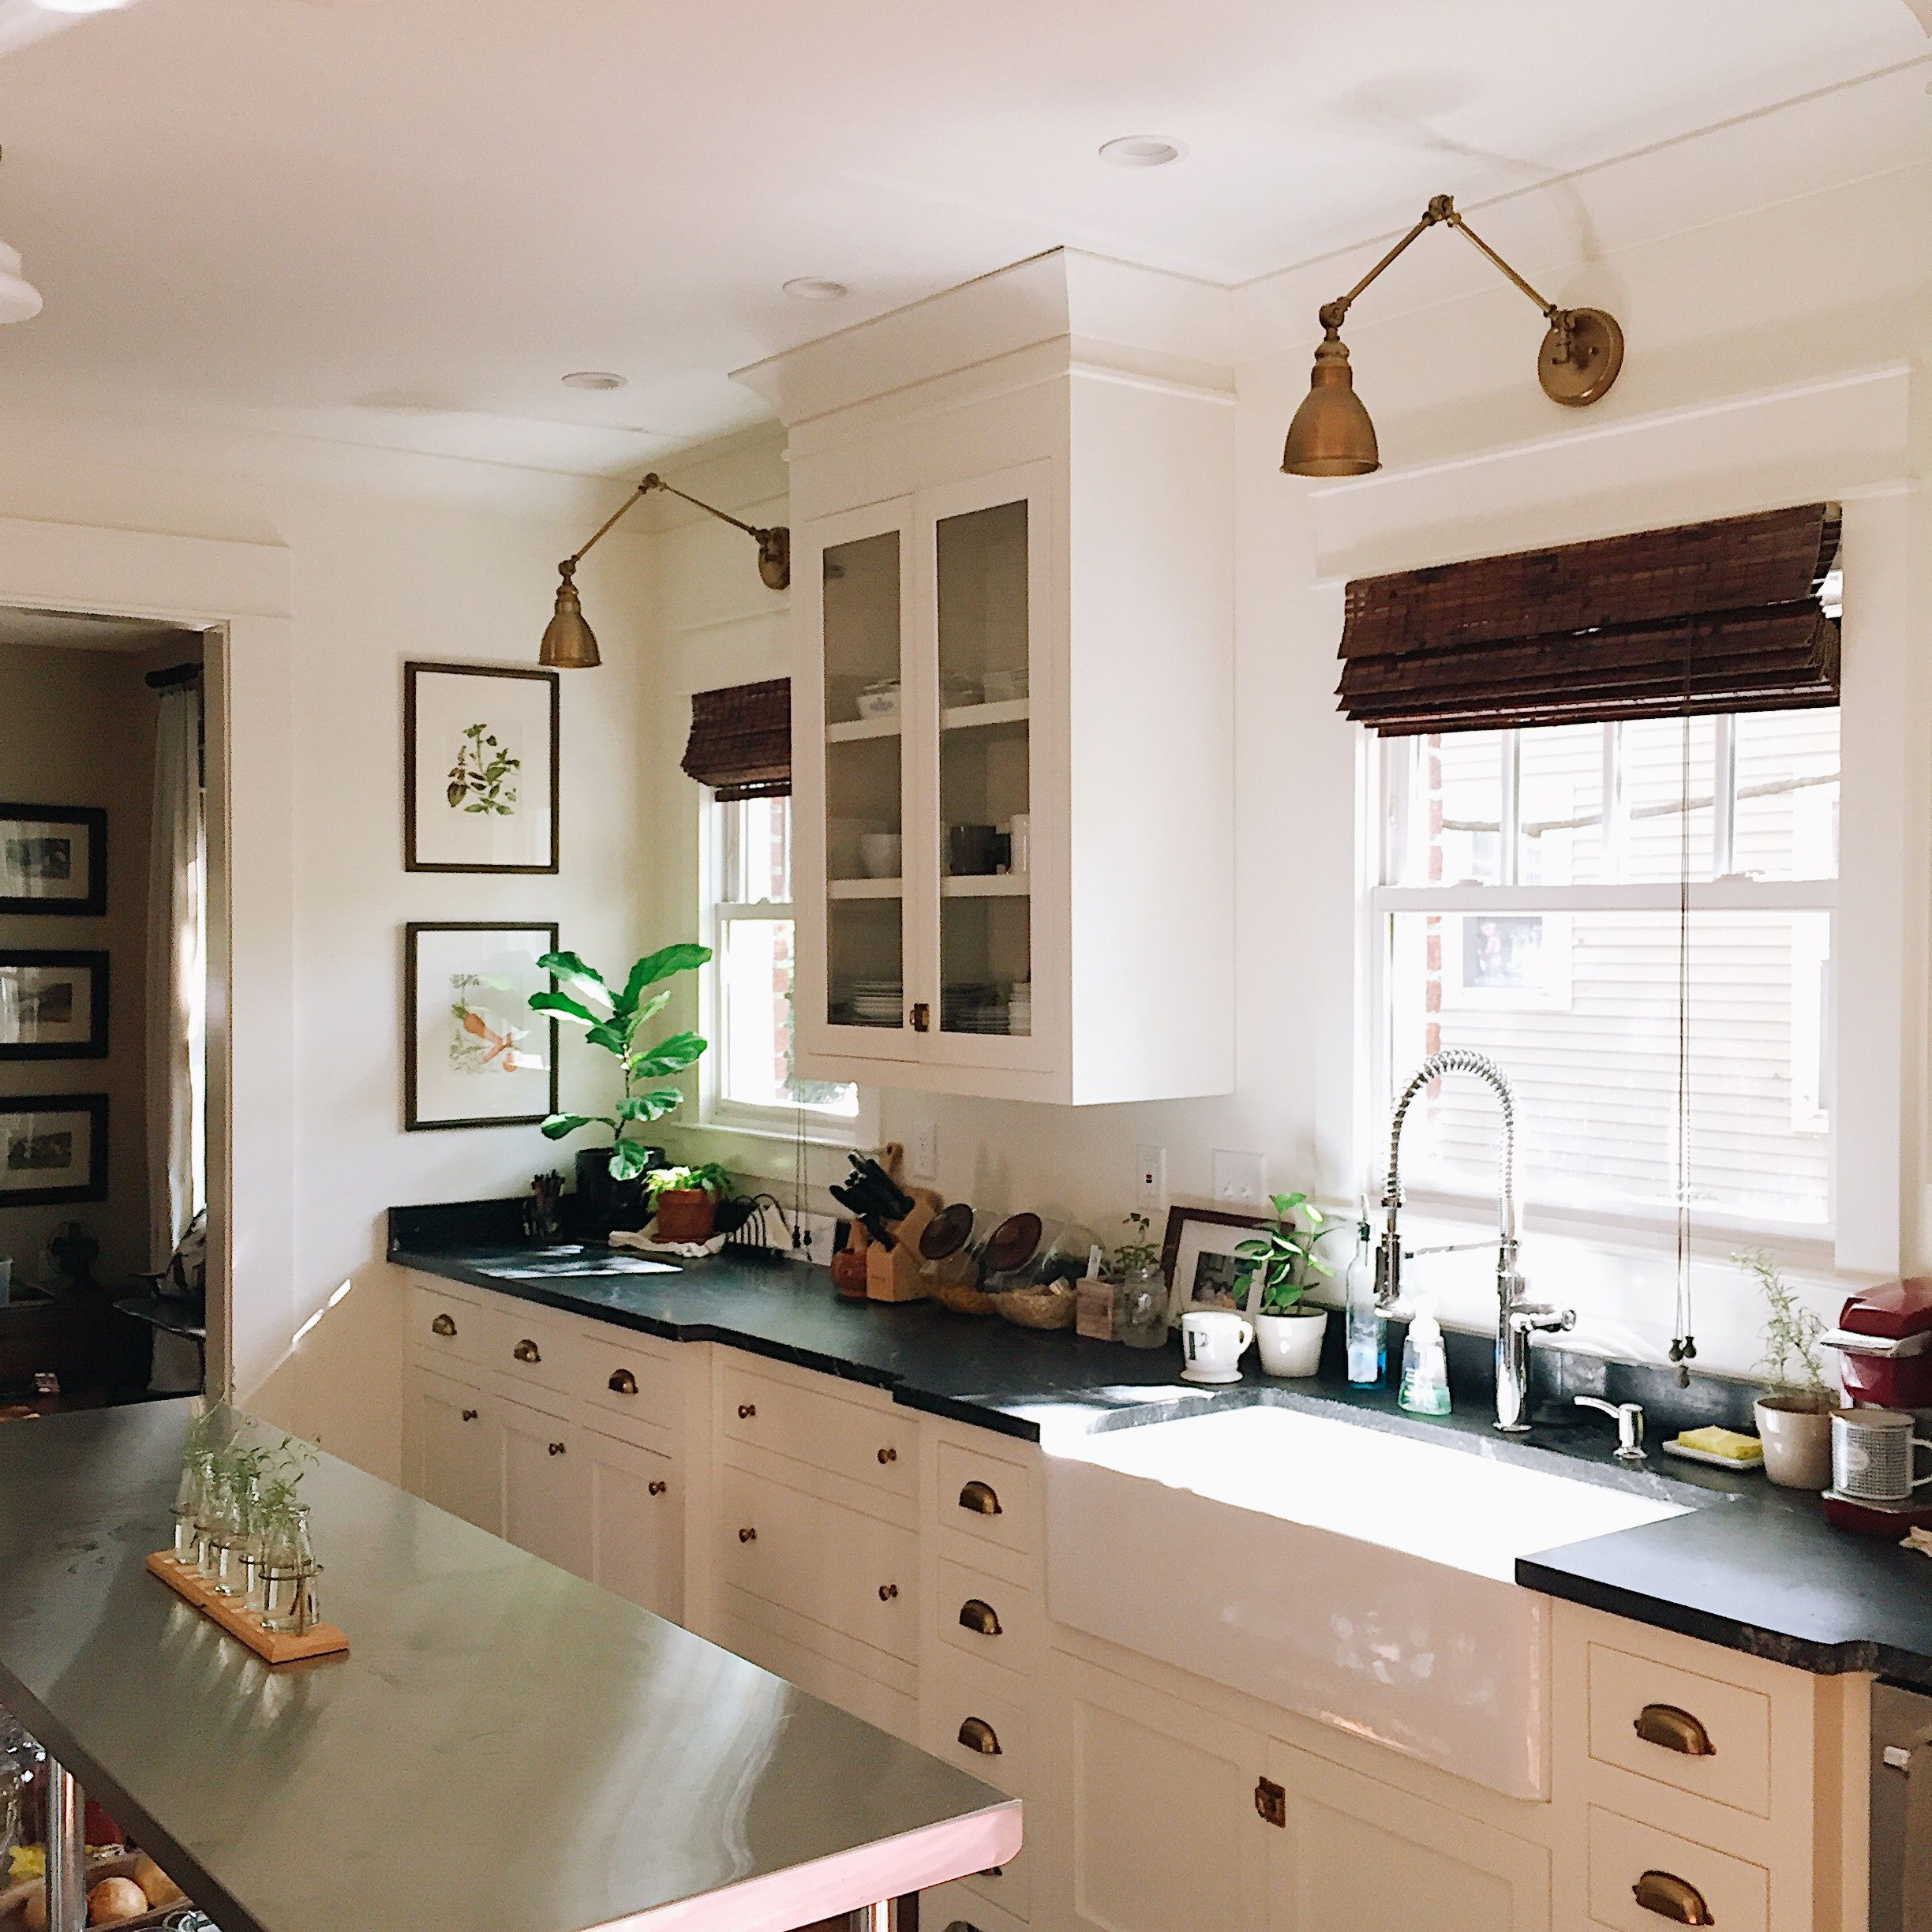 Our Craftsman Kitchen With White Shaker Cabinets Black Honed Granite And Aged Brass Hardware Wit Craftsman Kitchen Cabinets Kitchen Layout Craftsman Kitchen